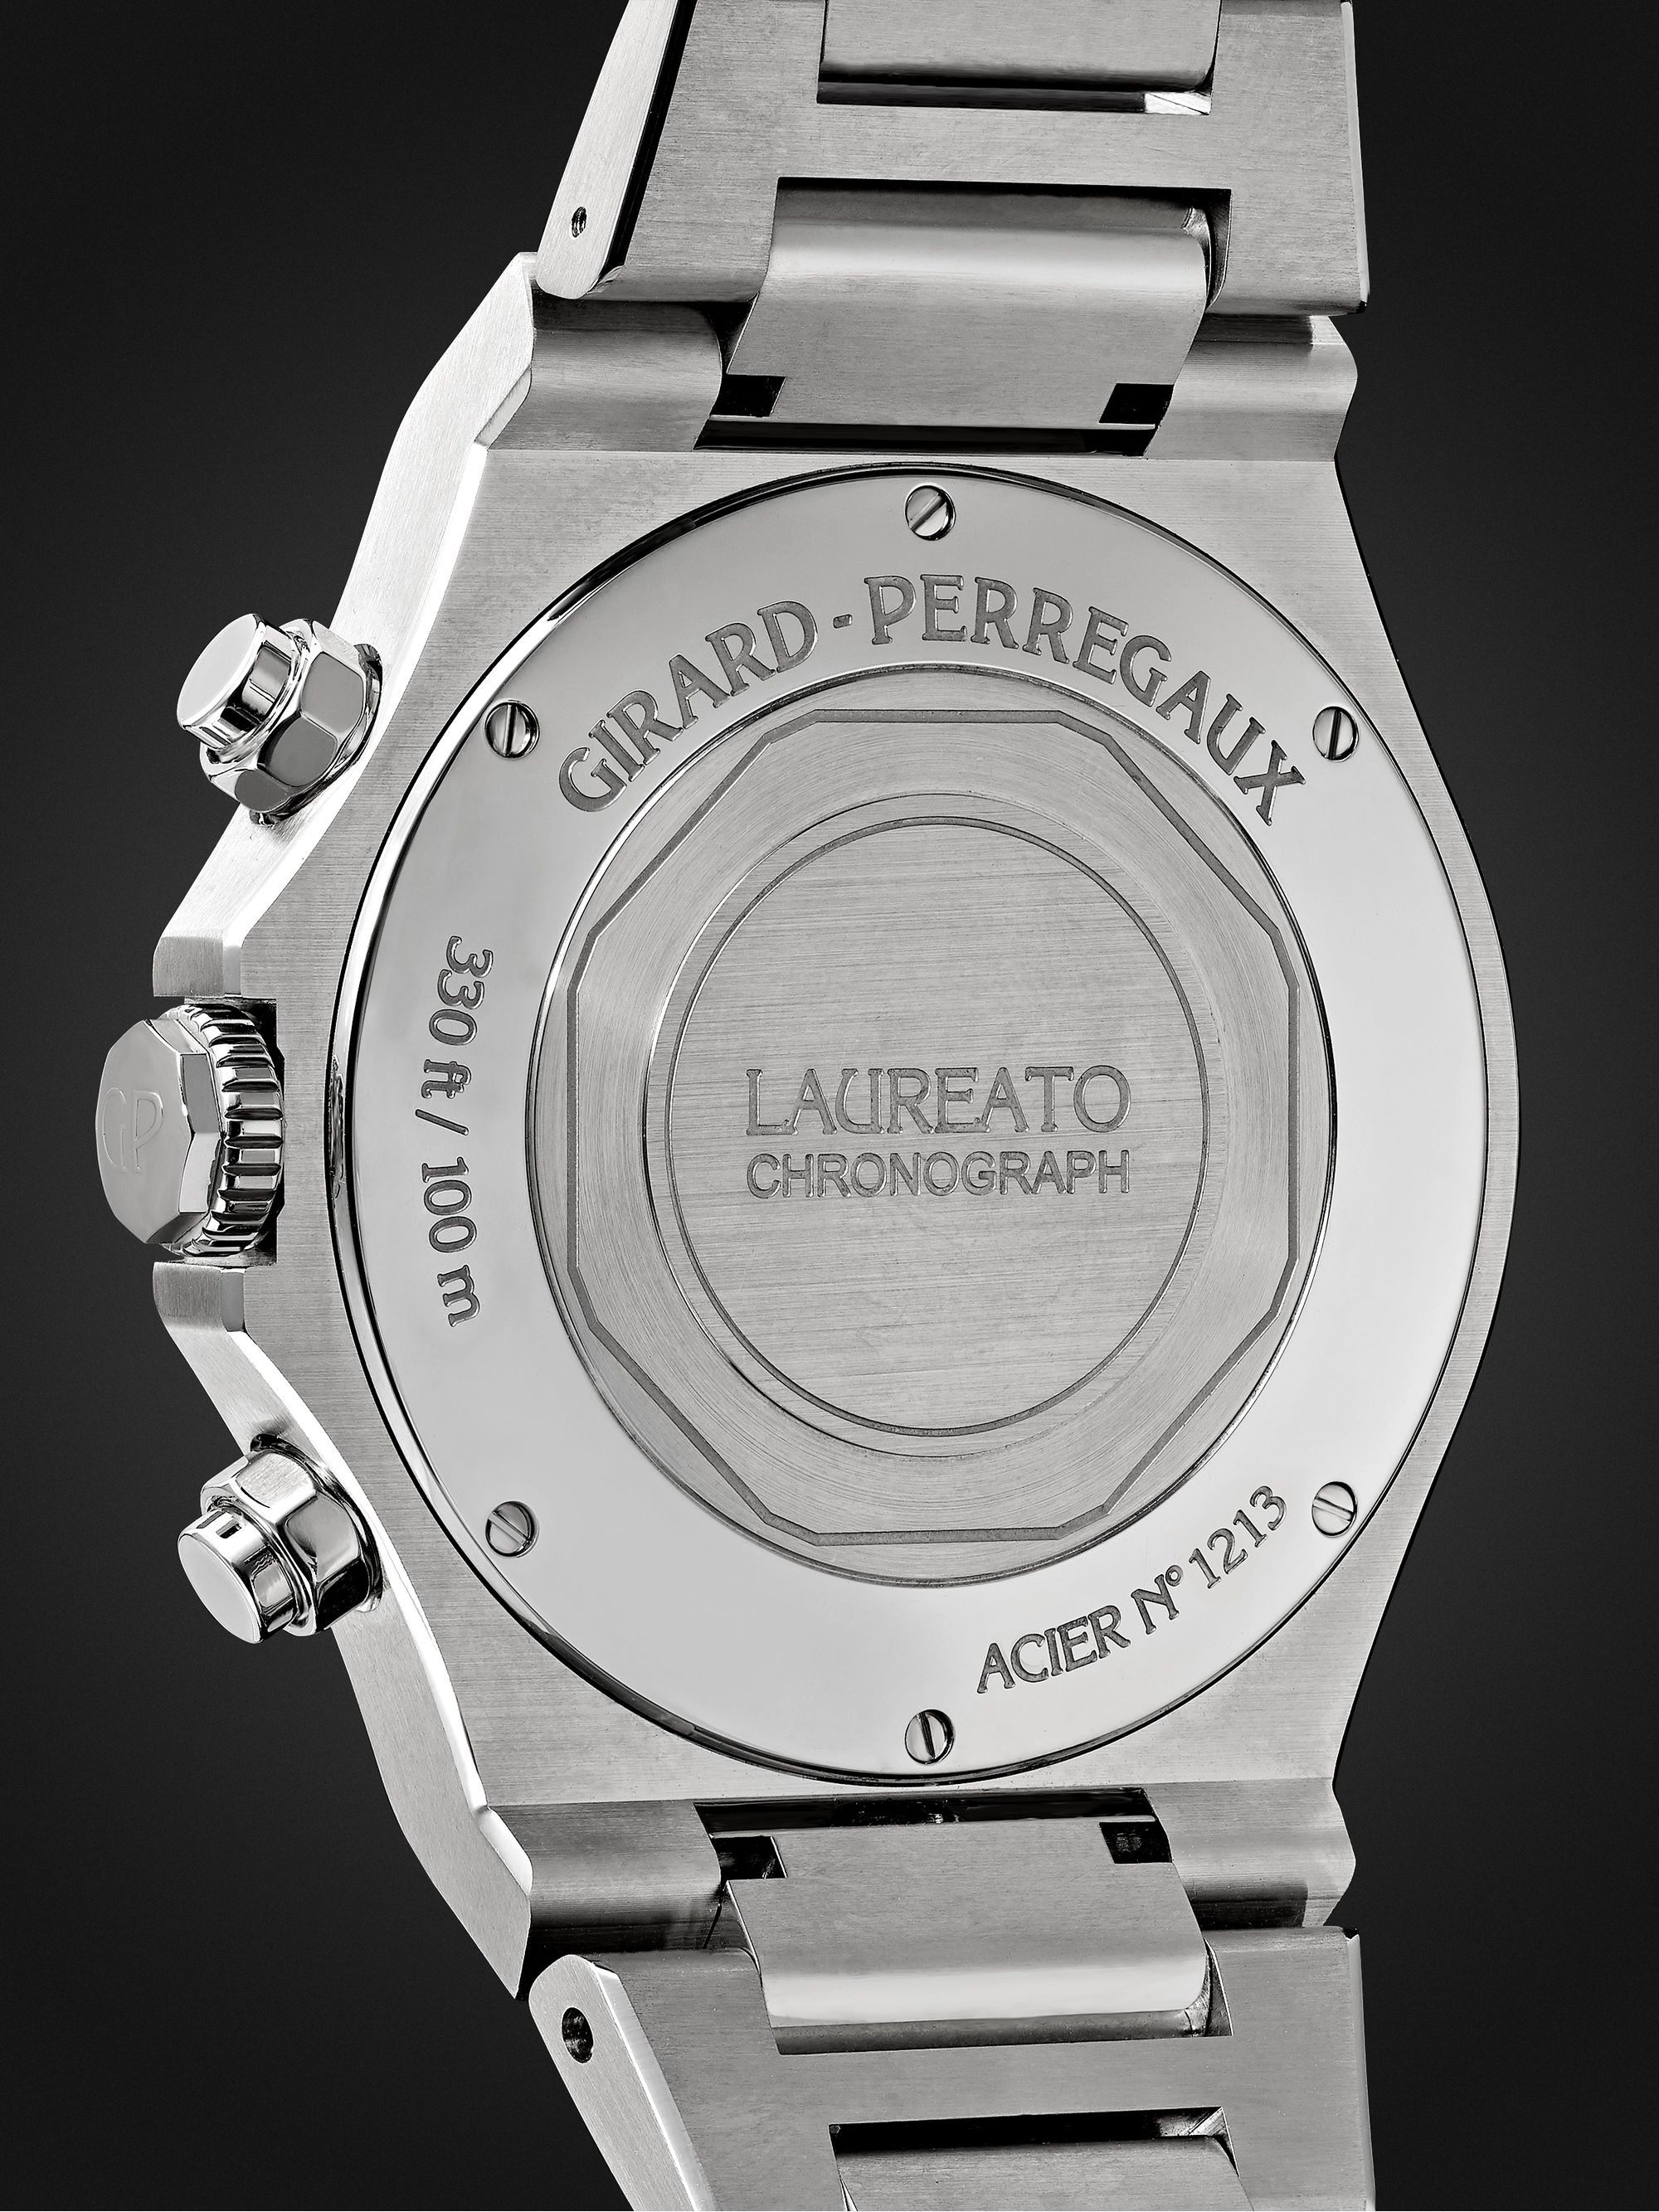 Girard-Perregaux Laureato Chronograph Automatic 42mm Stainless Steel Watch, Ref. No. 81020-11-131-11A